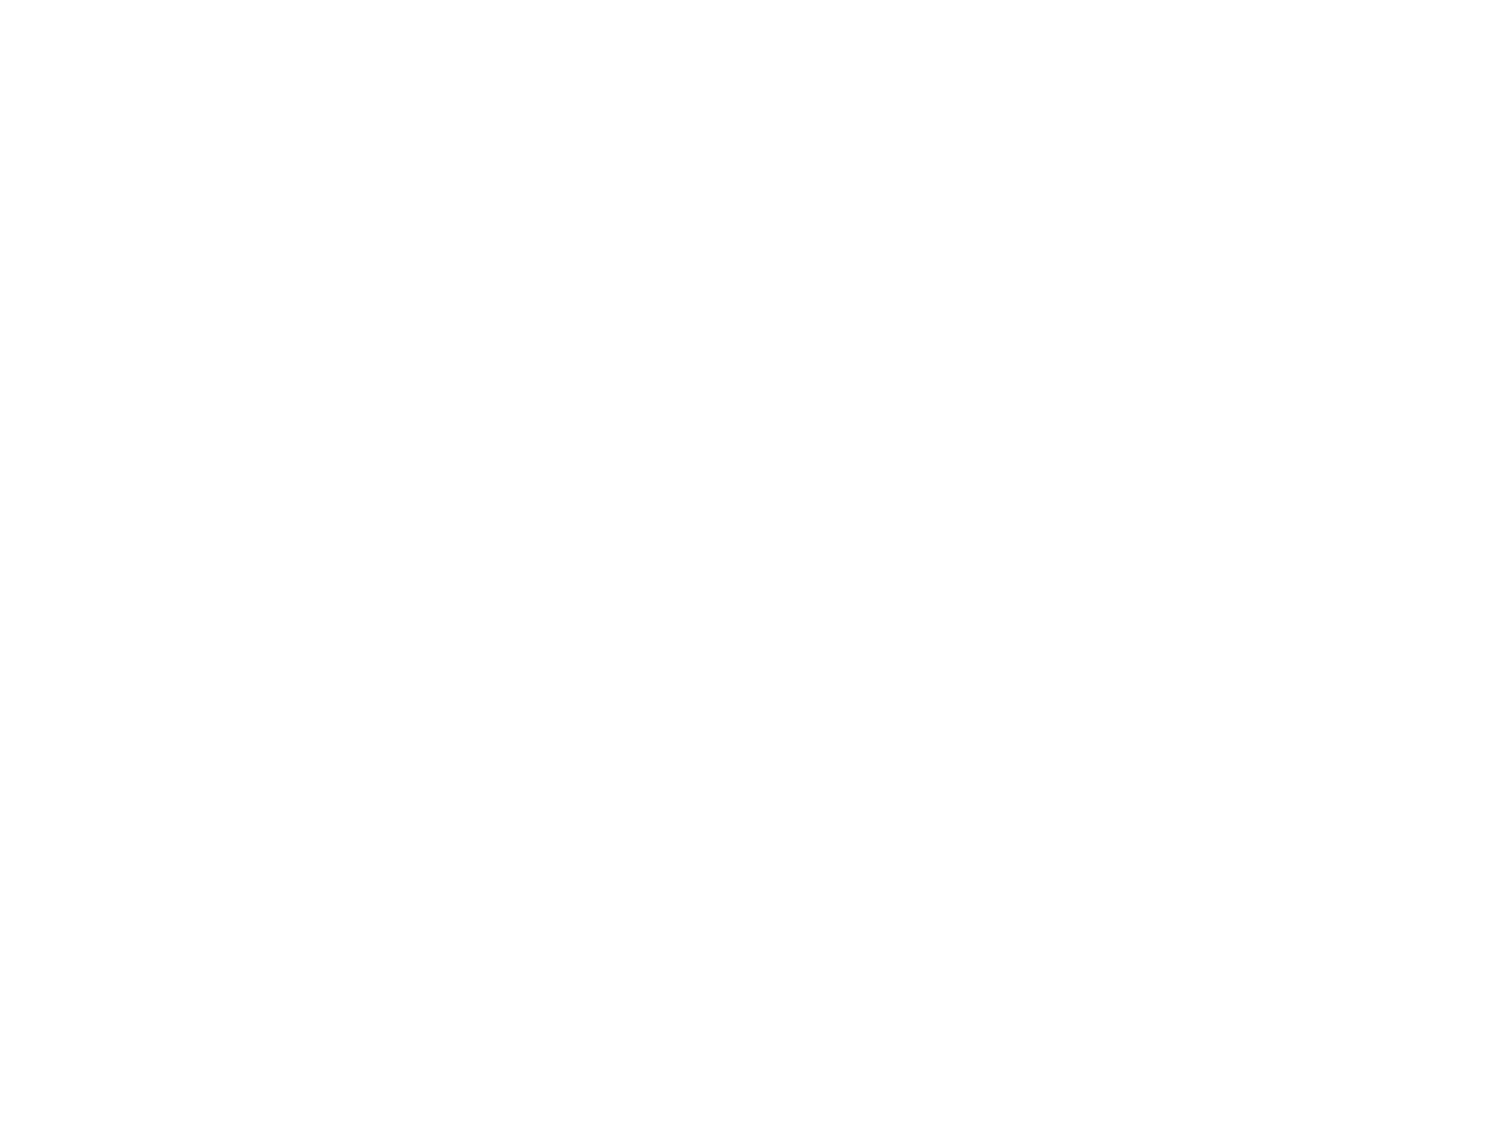 Keltek Cornish Brewery